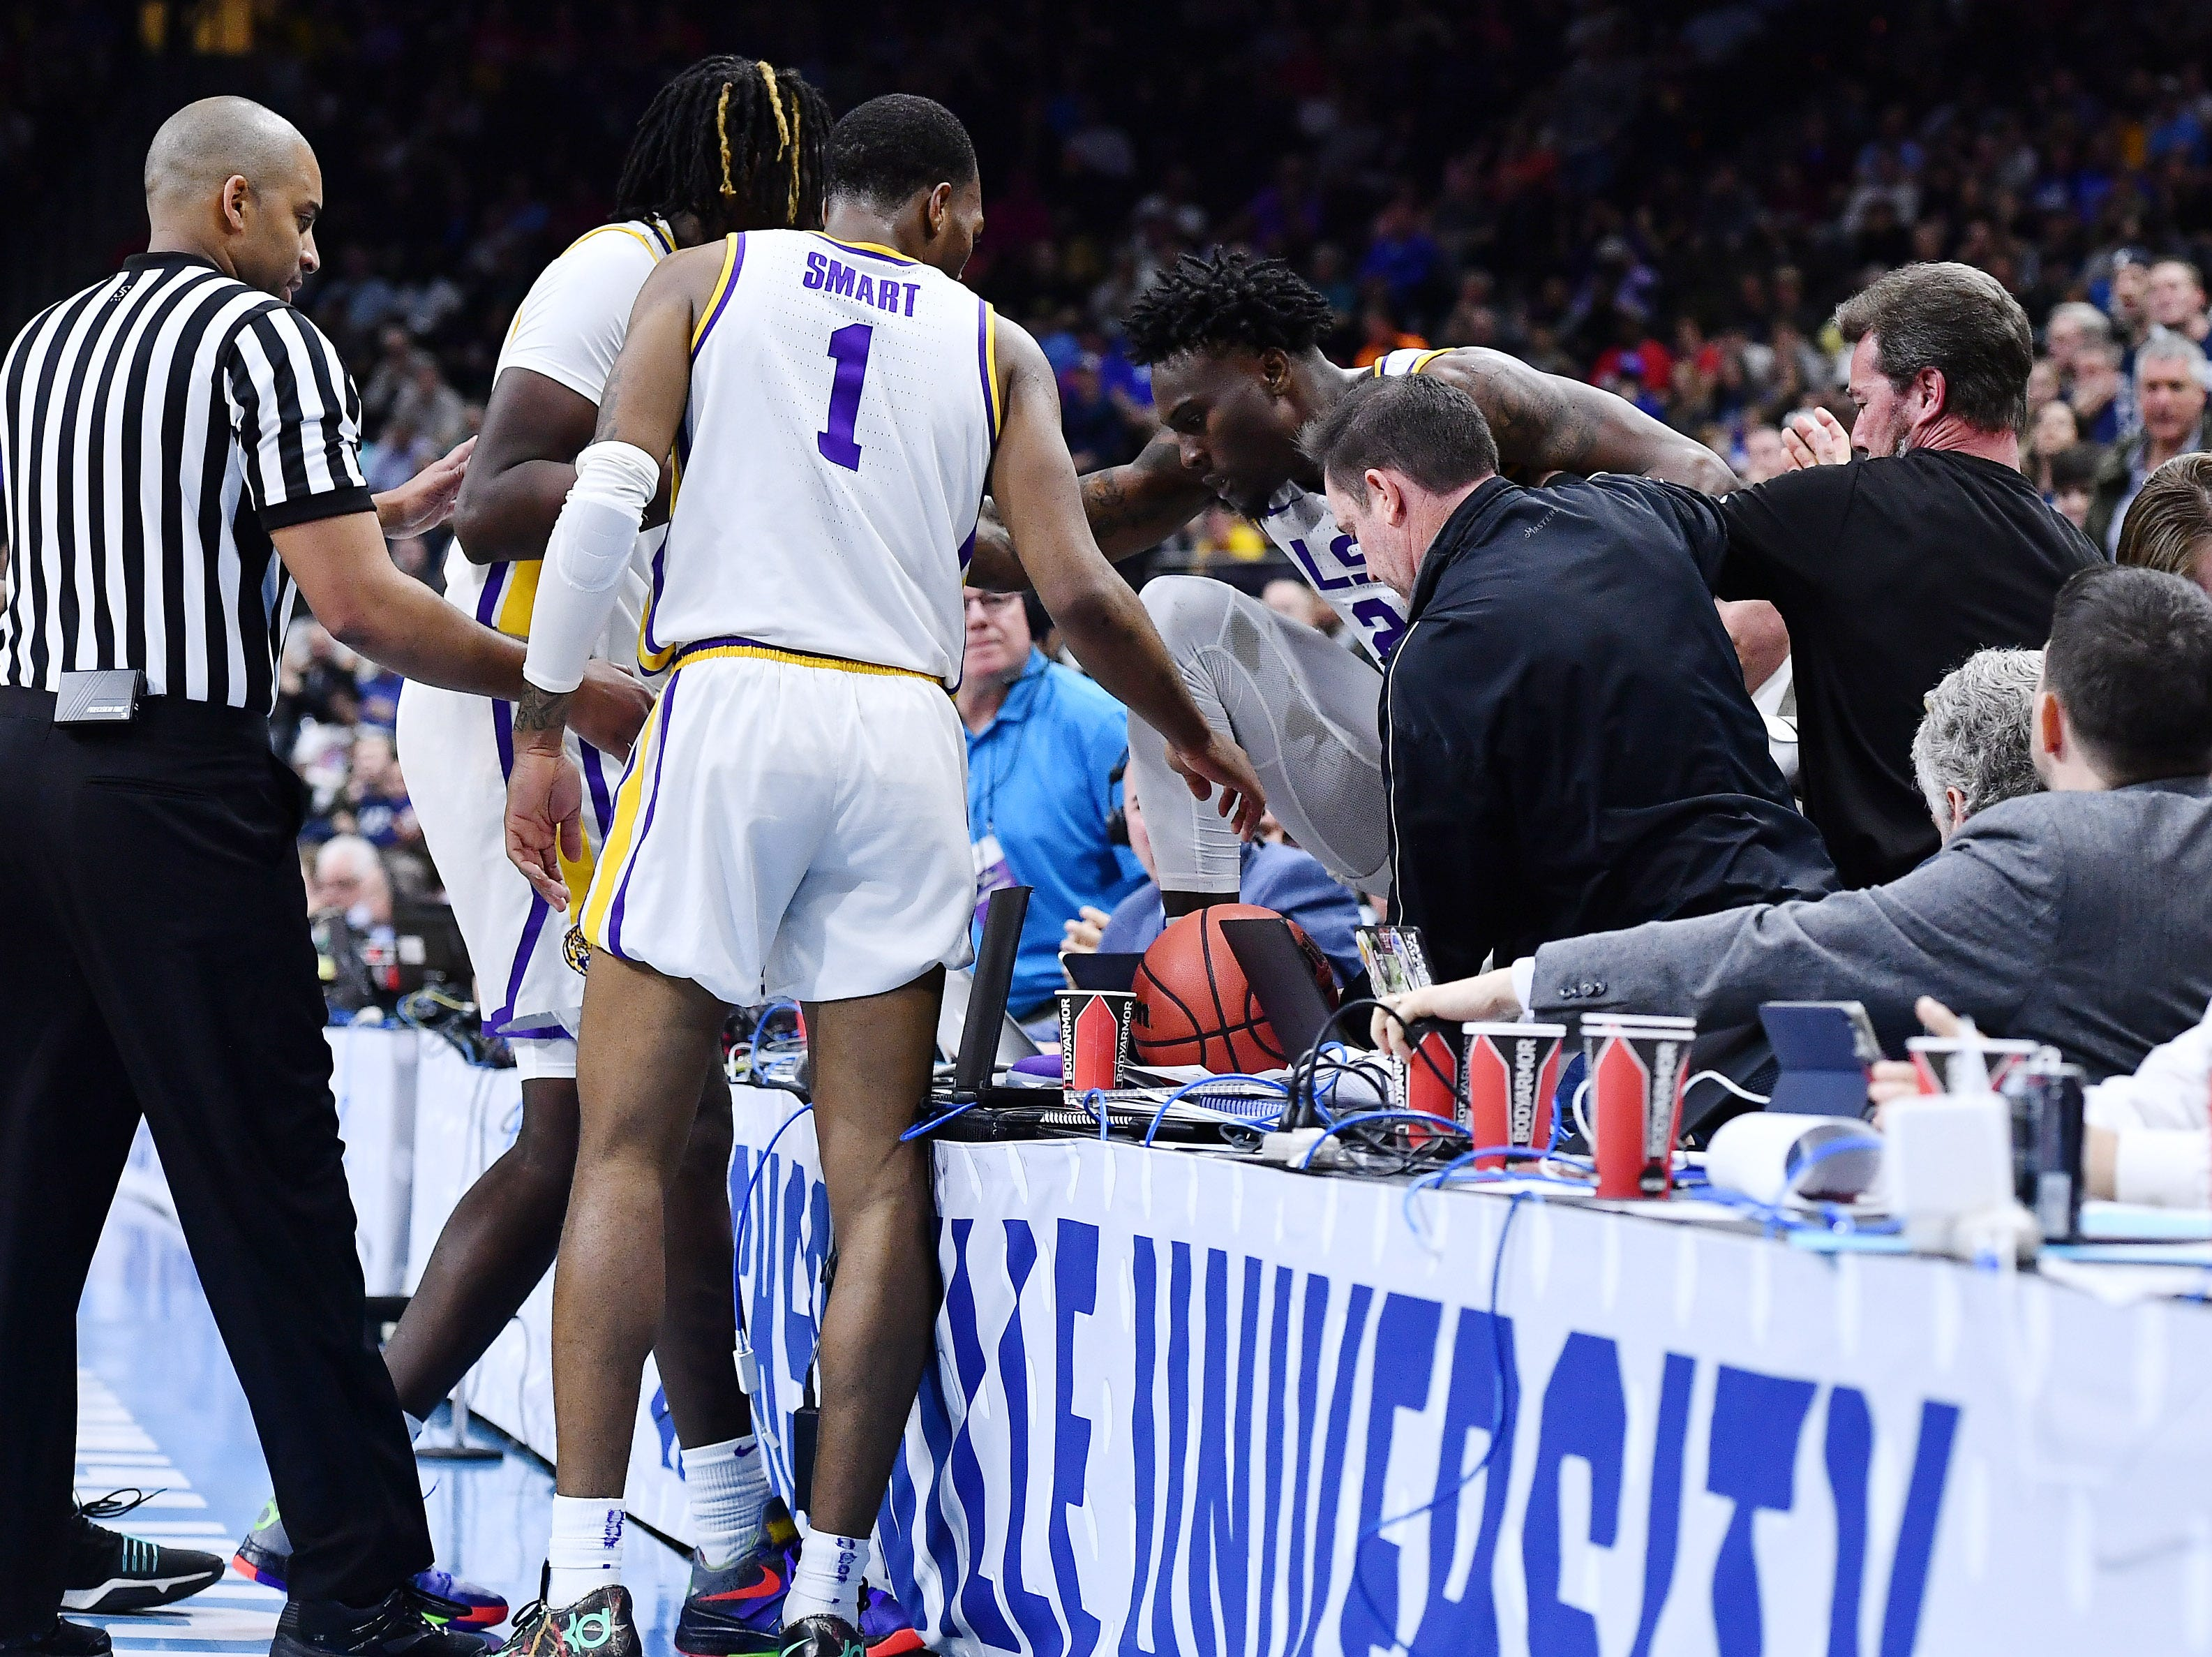 Mar 21, 2019; Jacksonville, FL, USA; LSU Tigers forward Emmitt Williams (24) is helped back on to the court after jumping over the scorers table against the Yale Bulldogs during the second half in the first round of the 2019 NCAA Tournament at Jacksonville Veterans Memorial Arena. Mandatory Credit: John David Mercer-USA TODAY Sports